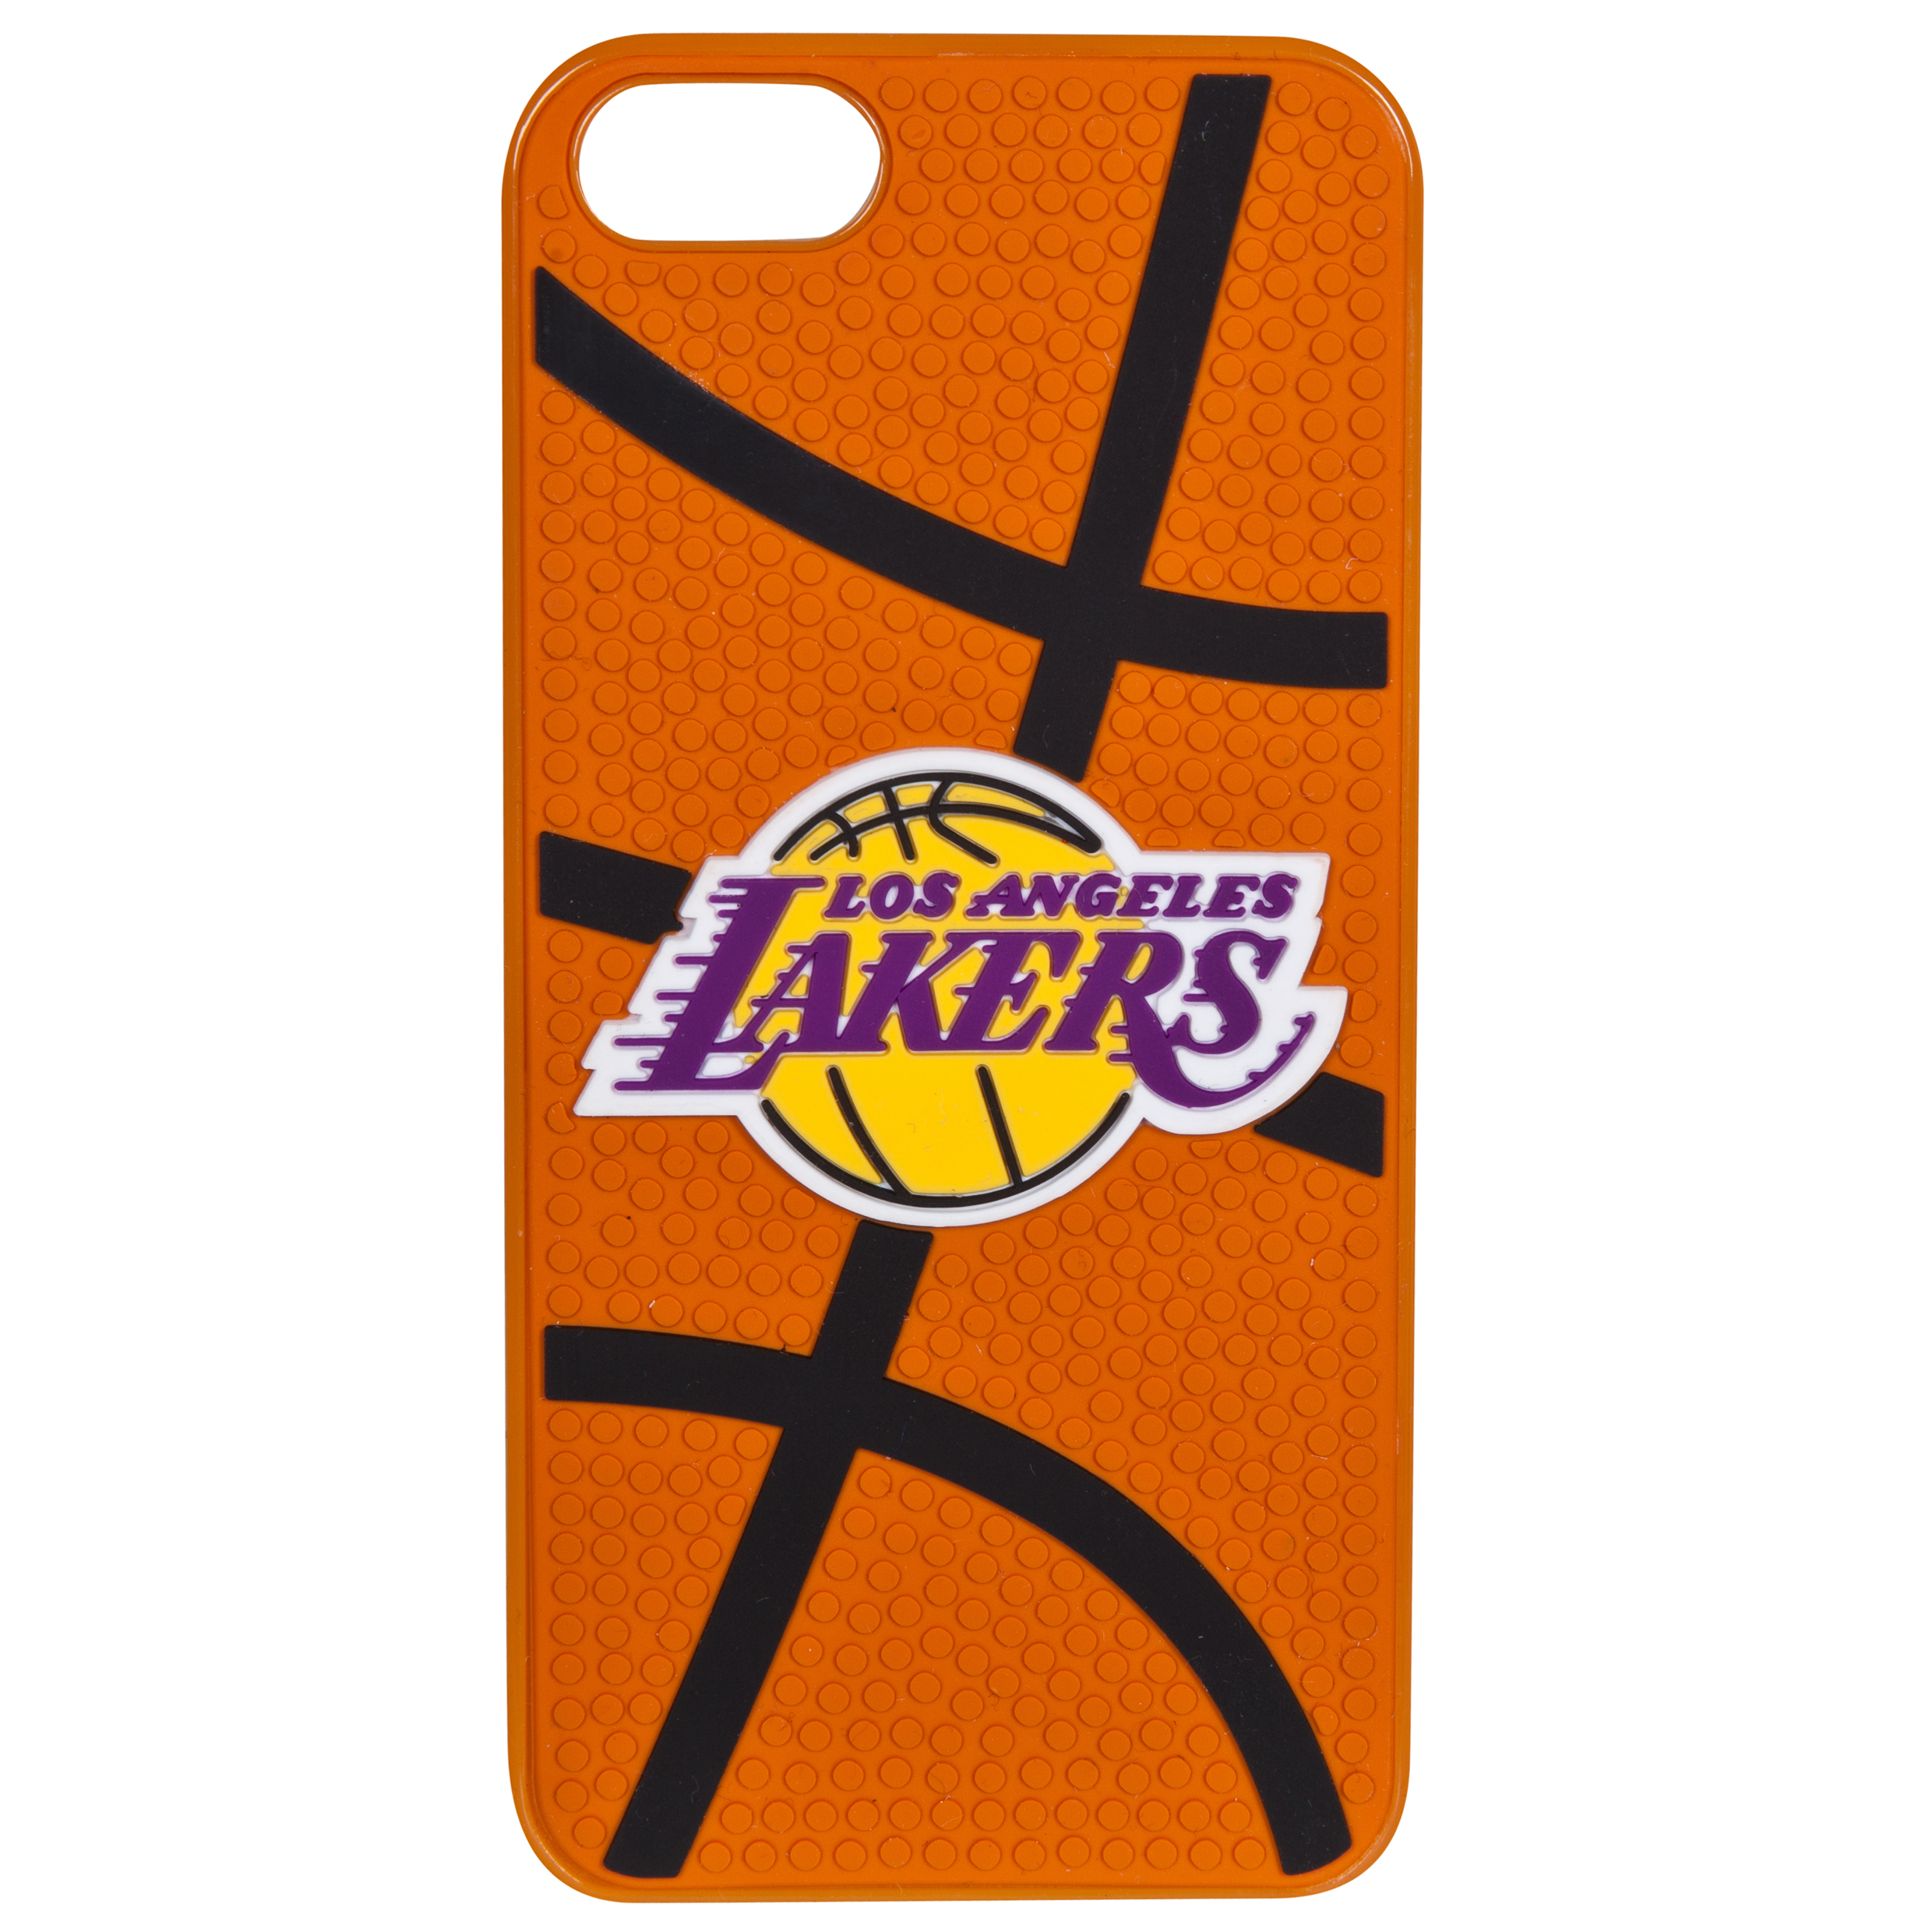 Los Angeles Lakers Iphone 5 Hard Case